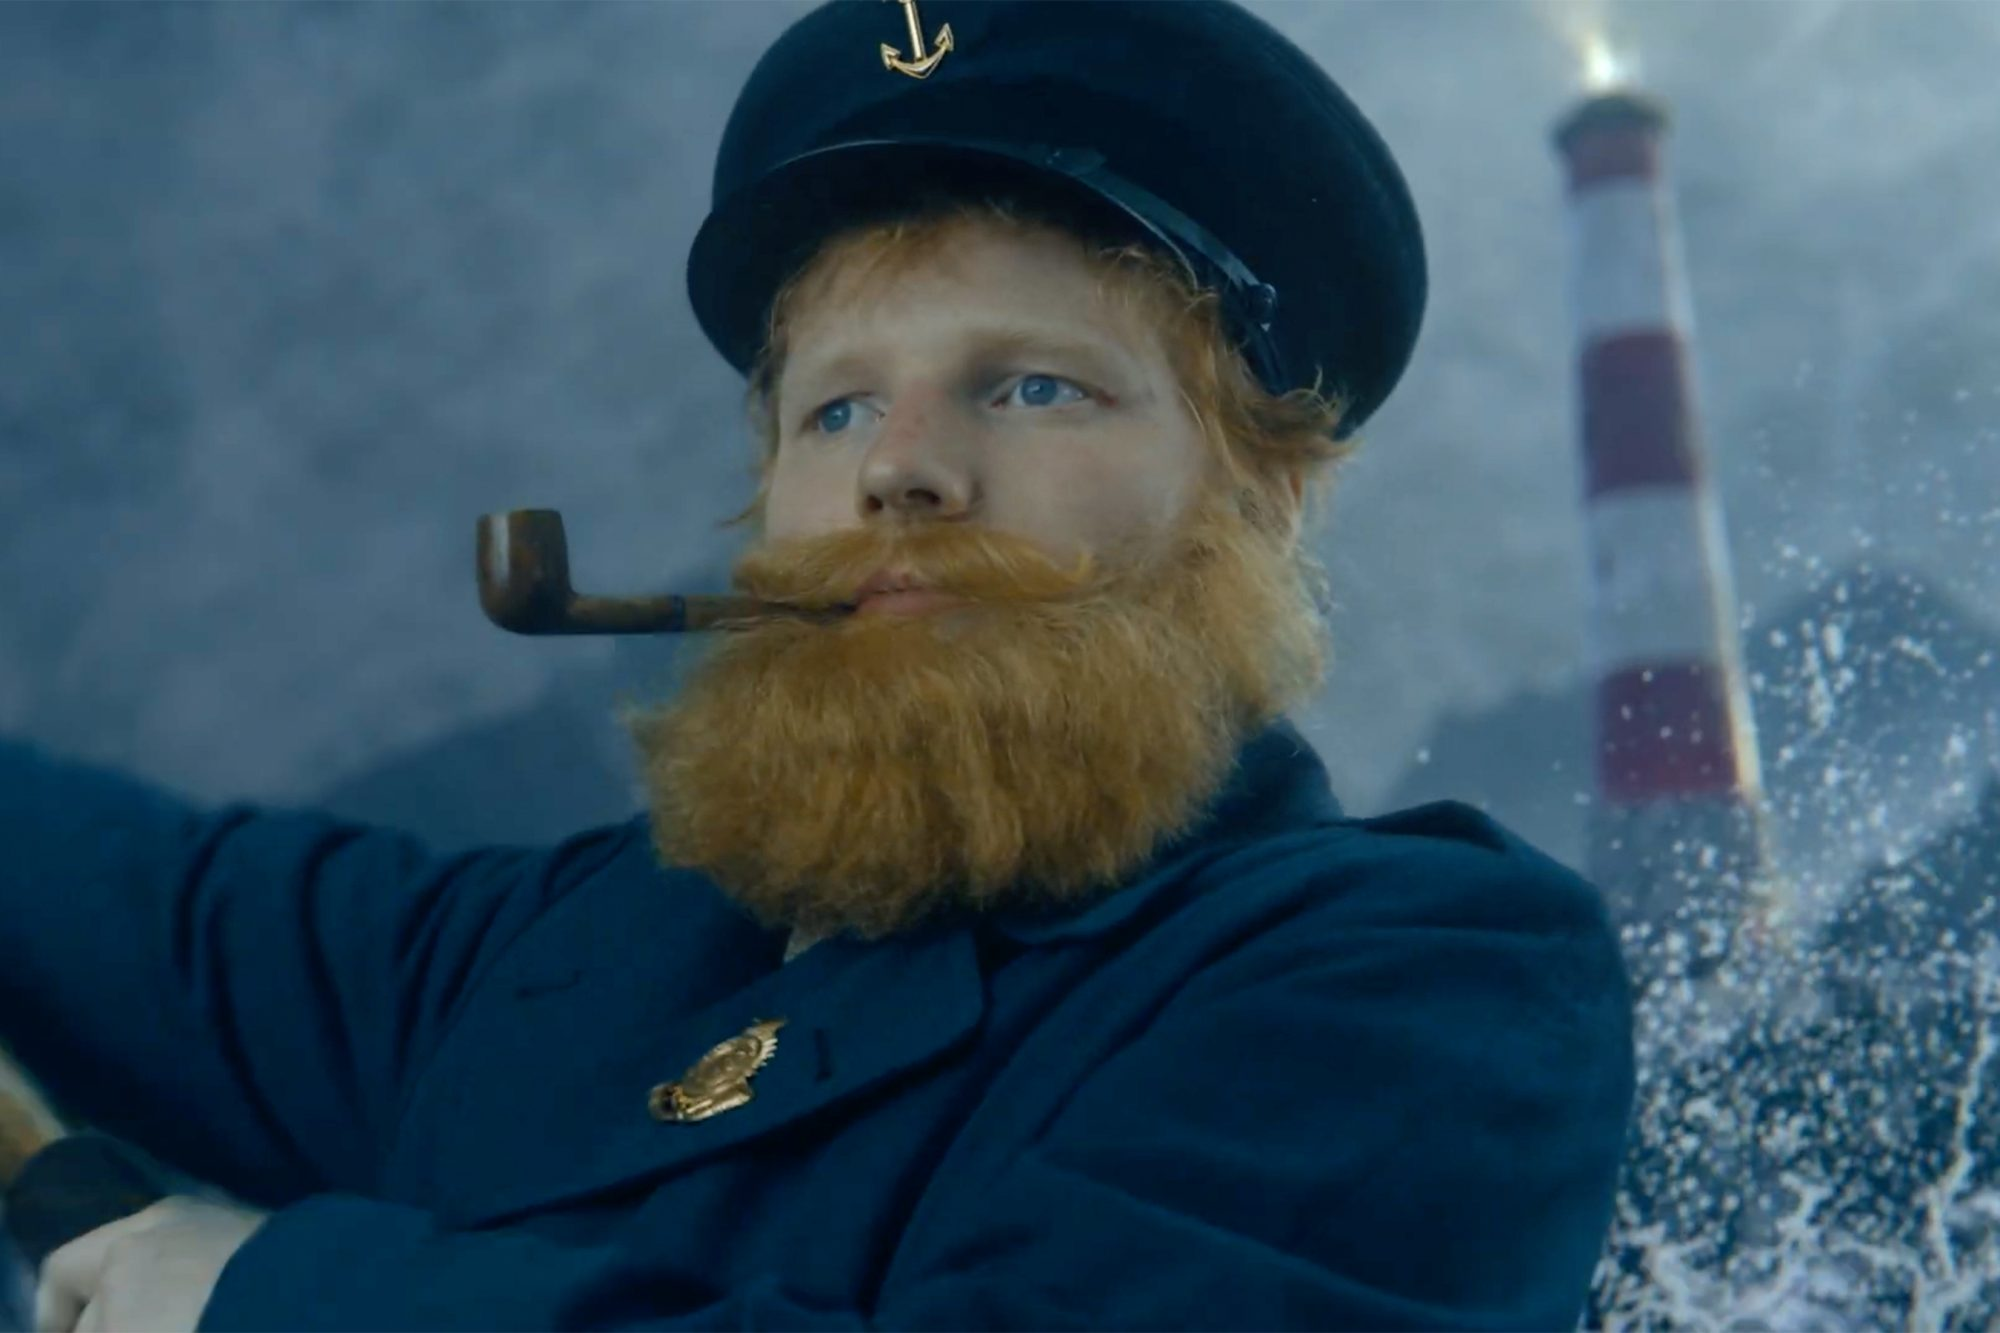 Ed Sheeran & Travis Scot music video (Antisocial)